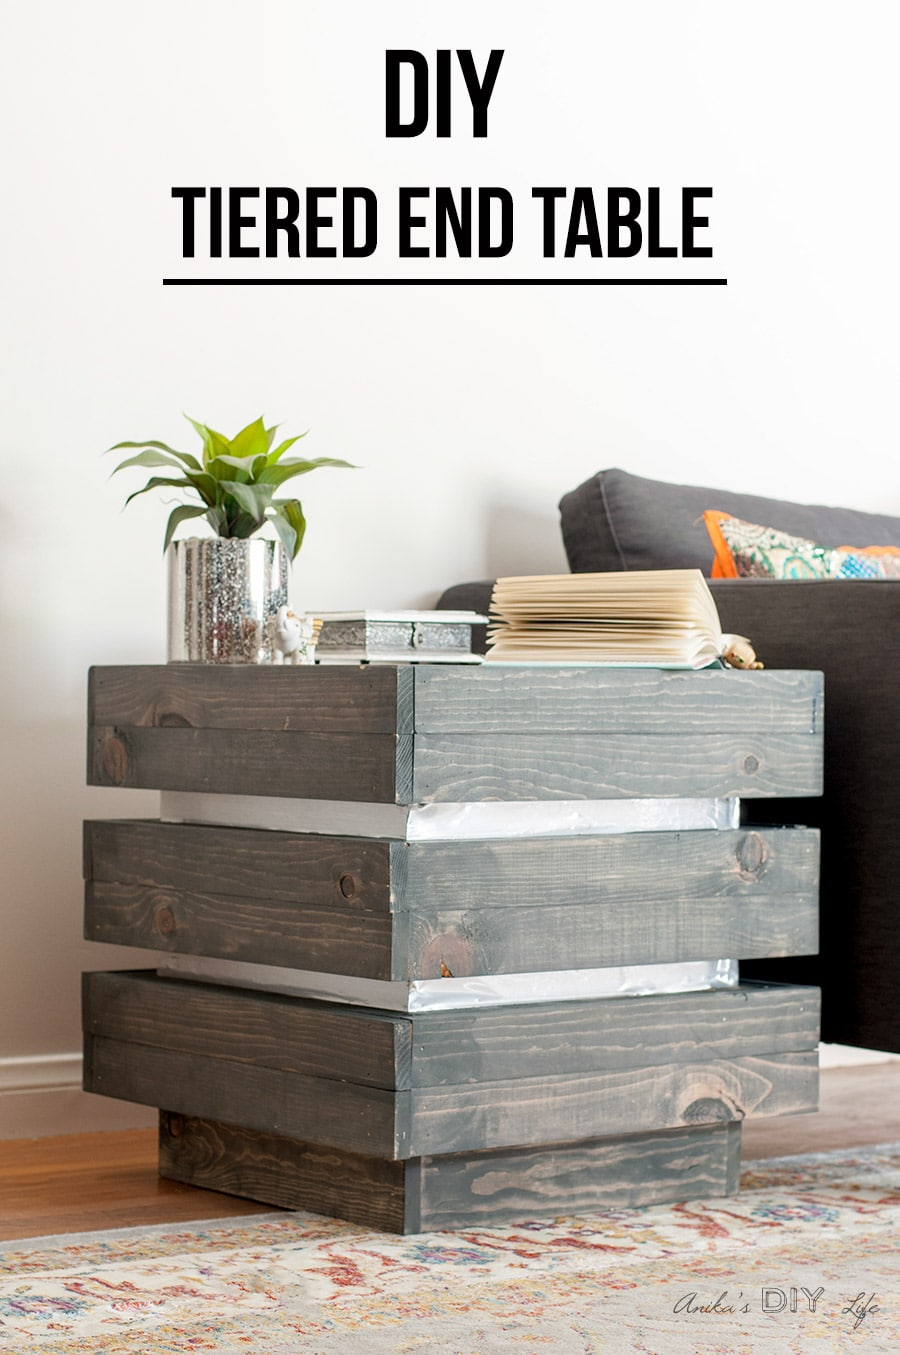 How to build a DIY chunky tiered end table